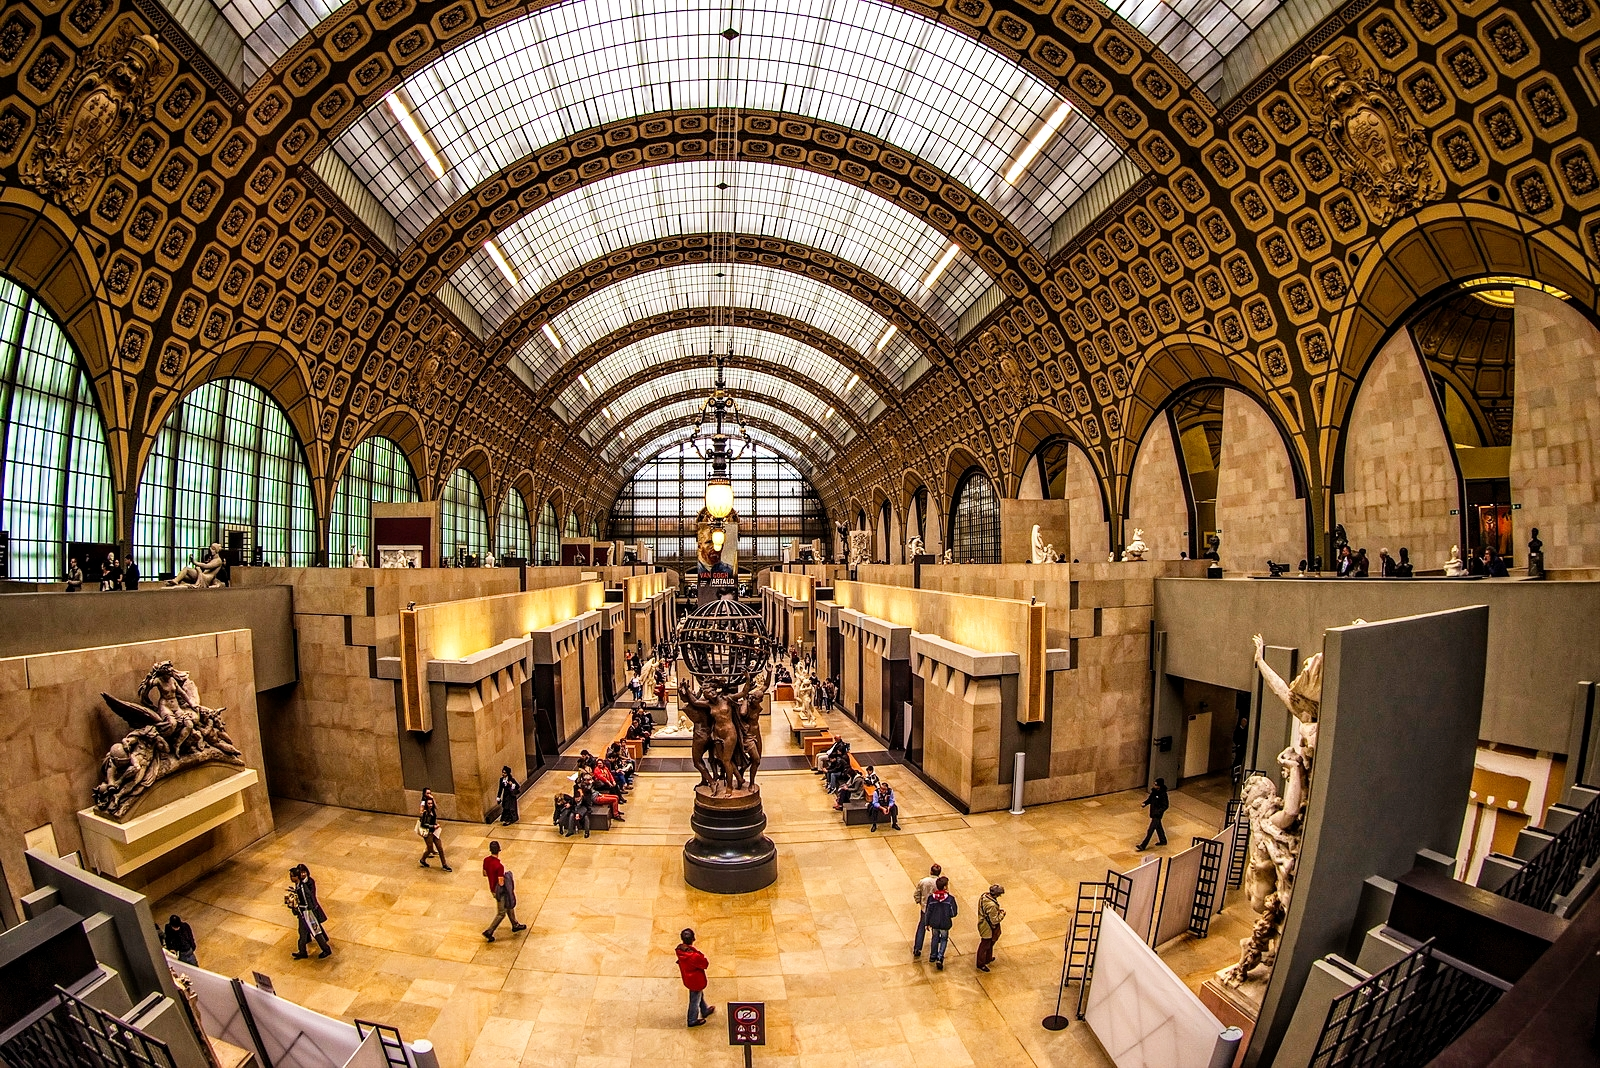 Mesmerizing Museums in Paris You Will Never Forget Once You Have Seen - Musée D'Orsay museum Mesmerizing Museums in Paris You Will Never Forget Once You Have Seen Mesmerizing Museums in Paris You Will Never Forget Once You Have Seen Mus  e D   Orsay